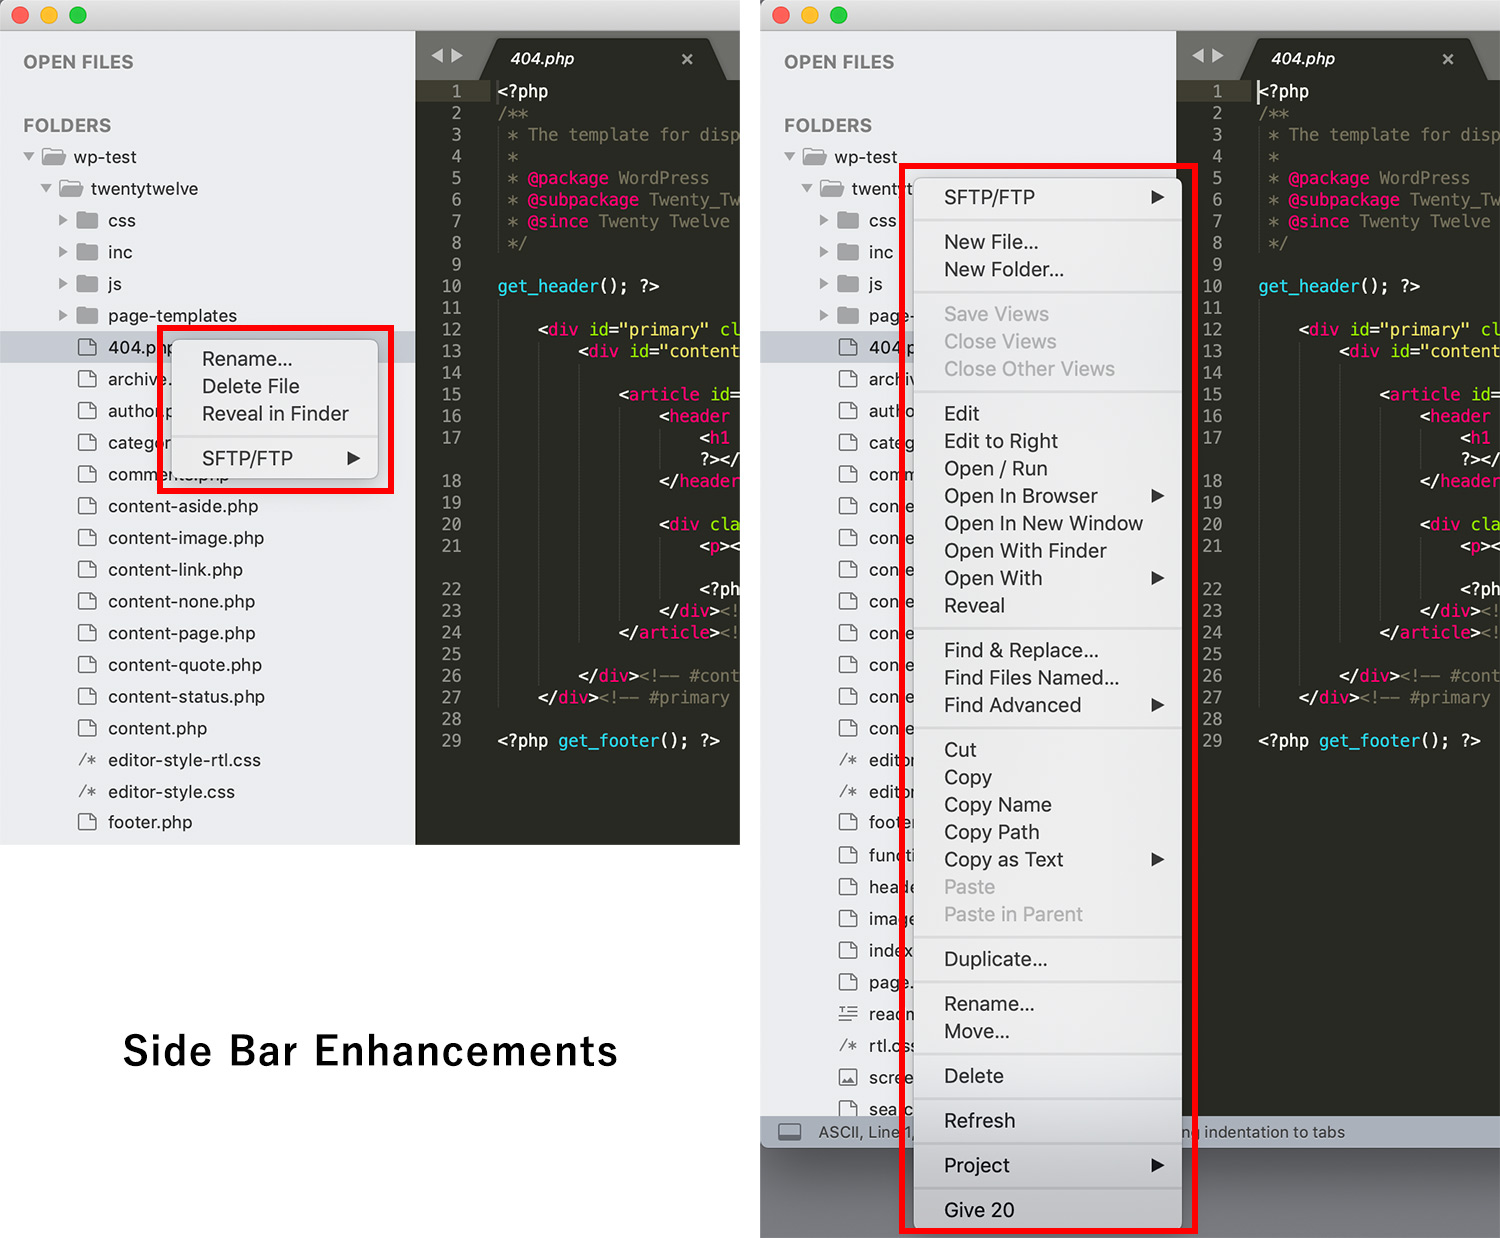 Sublime Textパッケージ「Side Bar Enhancements」